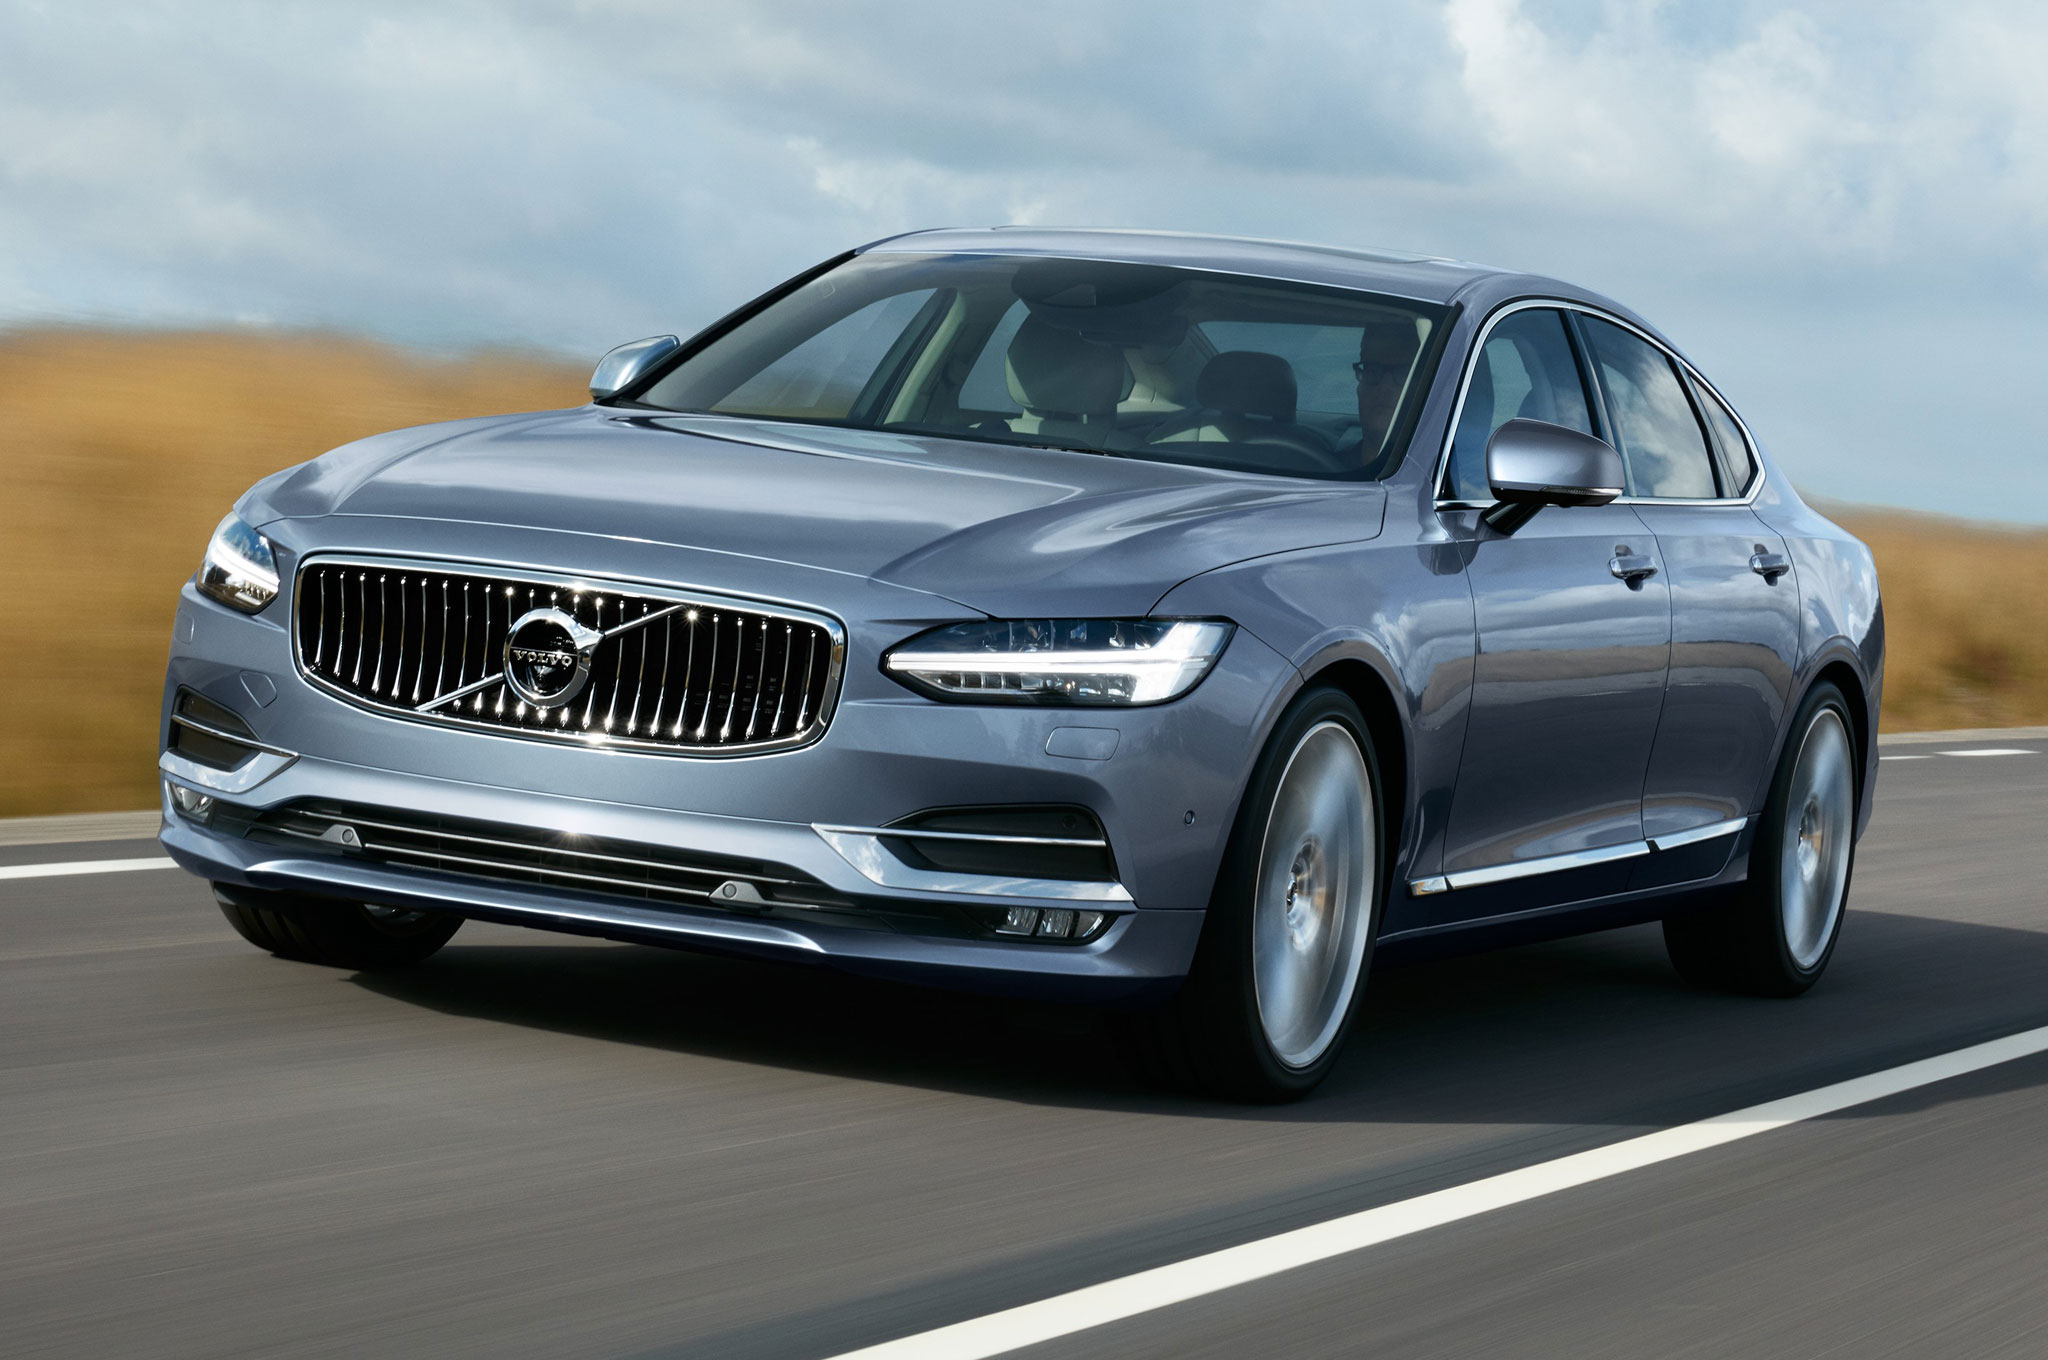 2017 Volvo S90 front view in motion 1